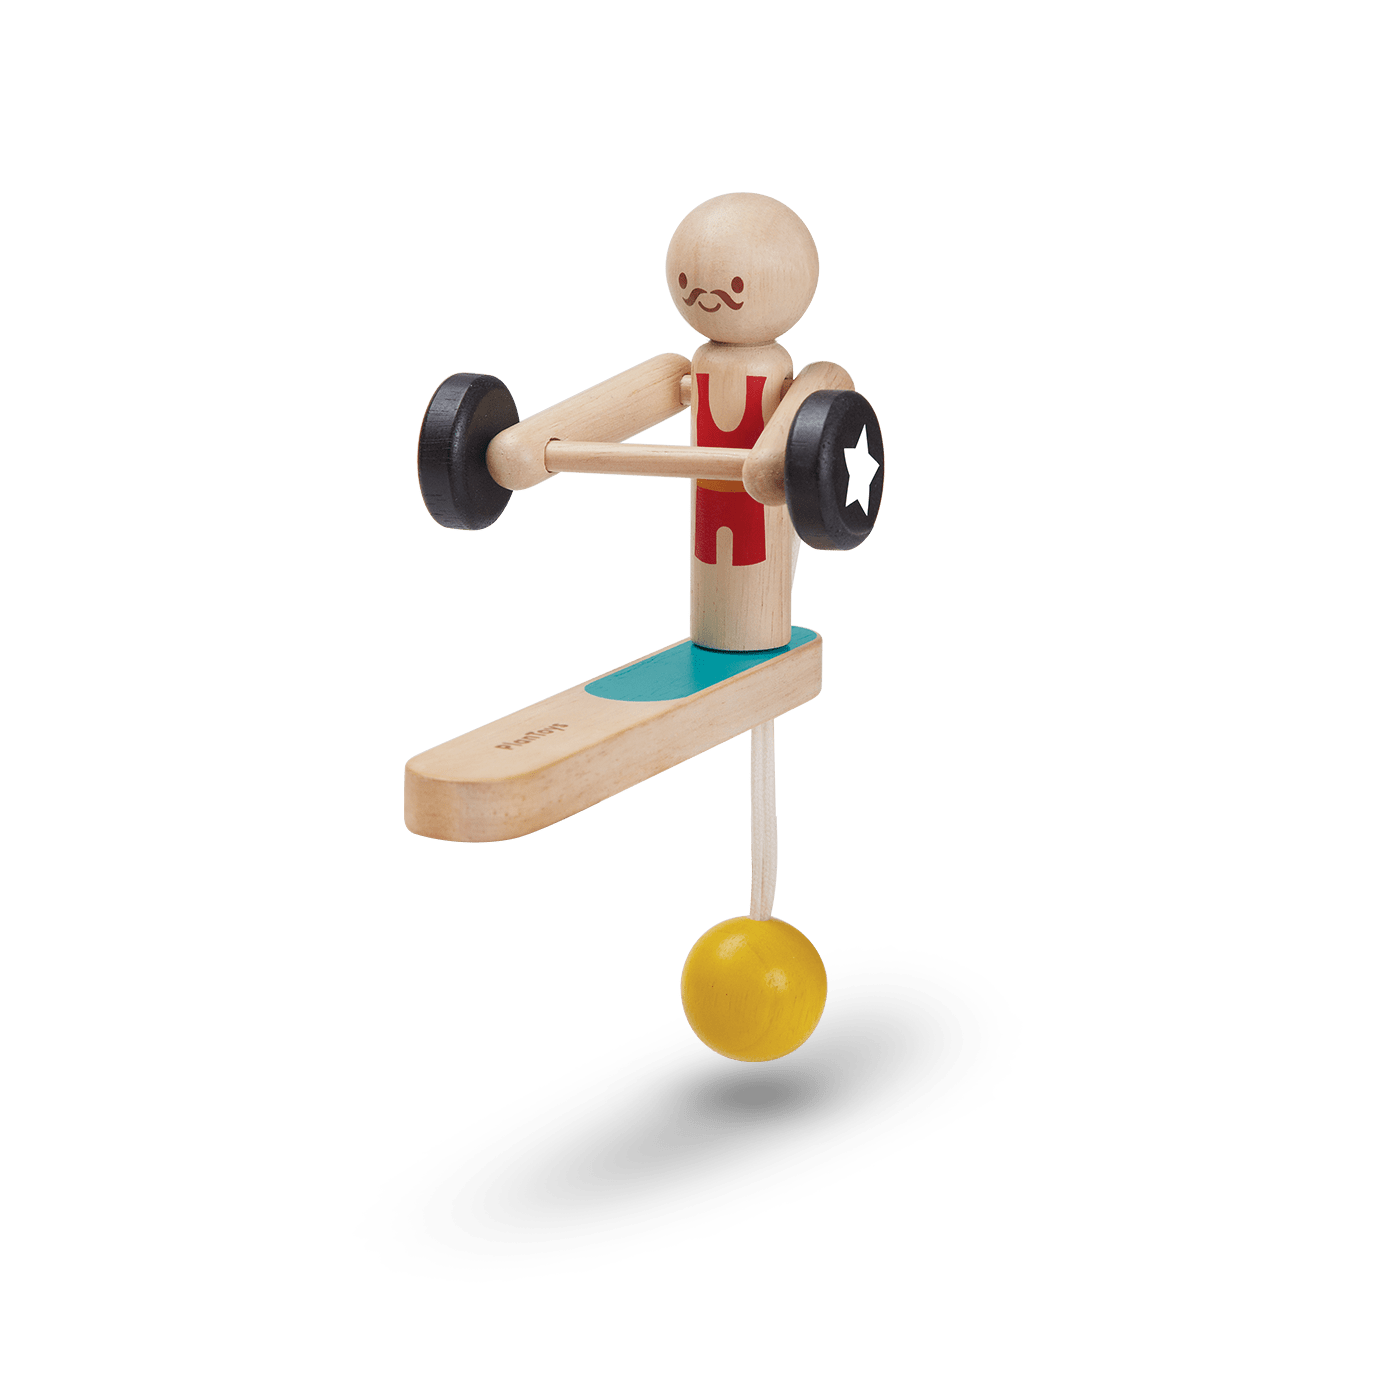 5366_PlanToys_WEIGHTLIFTING_ACROBAT_Learning_and_Education_Explore_Fine_Motor_Cause_and_Effect_Coordination_3yrs_Wooden_toys_Education_toys_Safety_Toys_Non-toxic_0.png